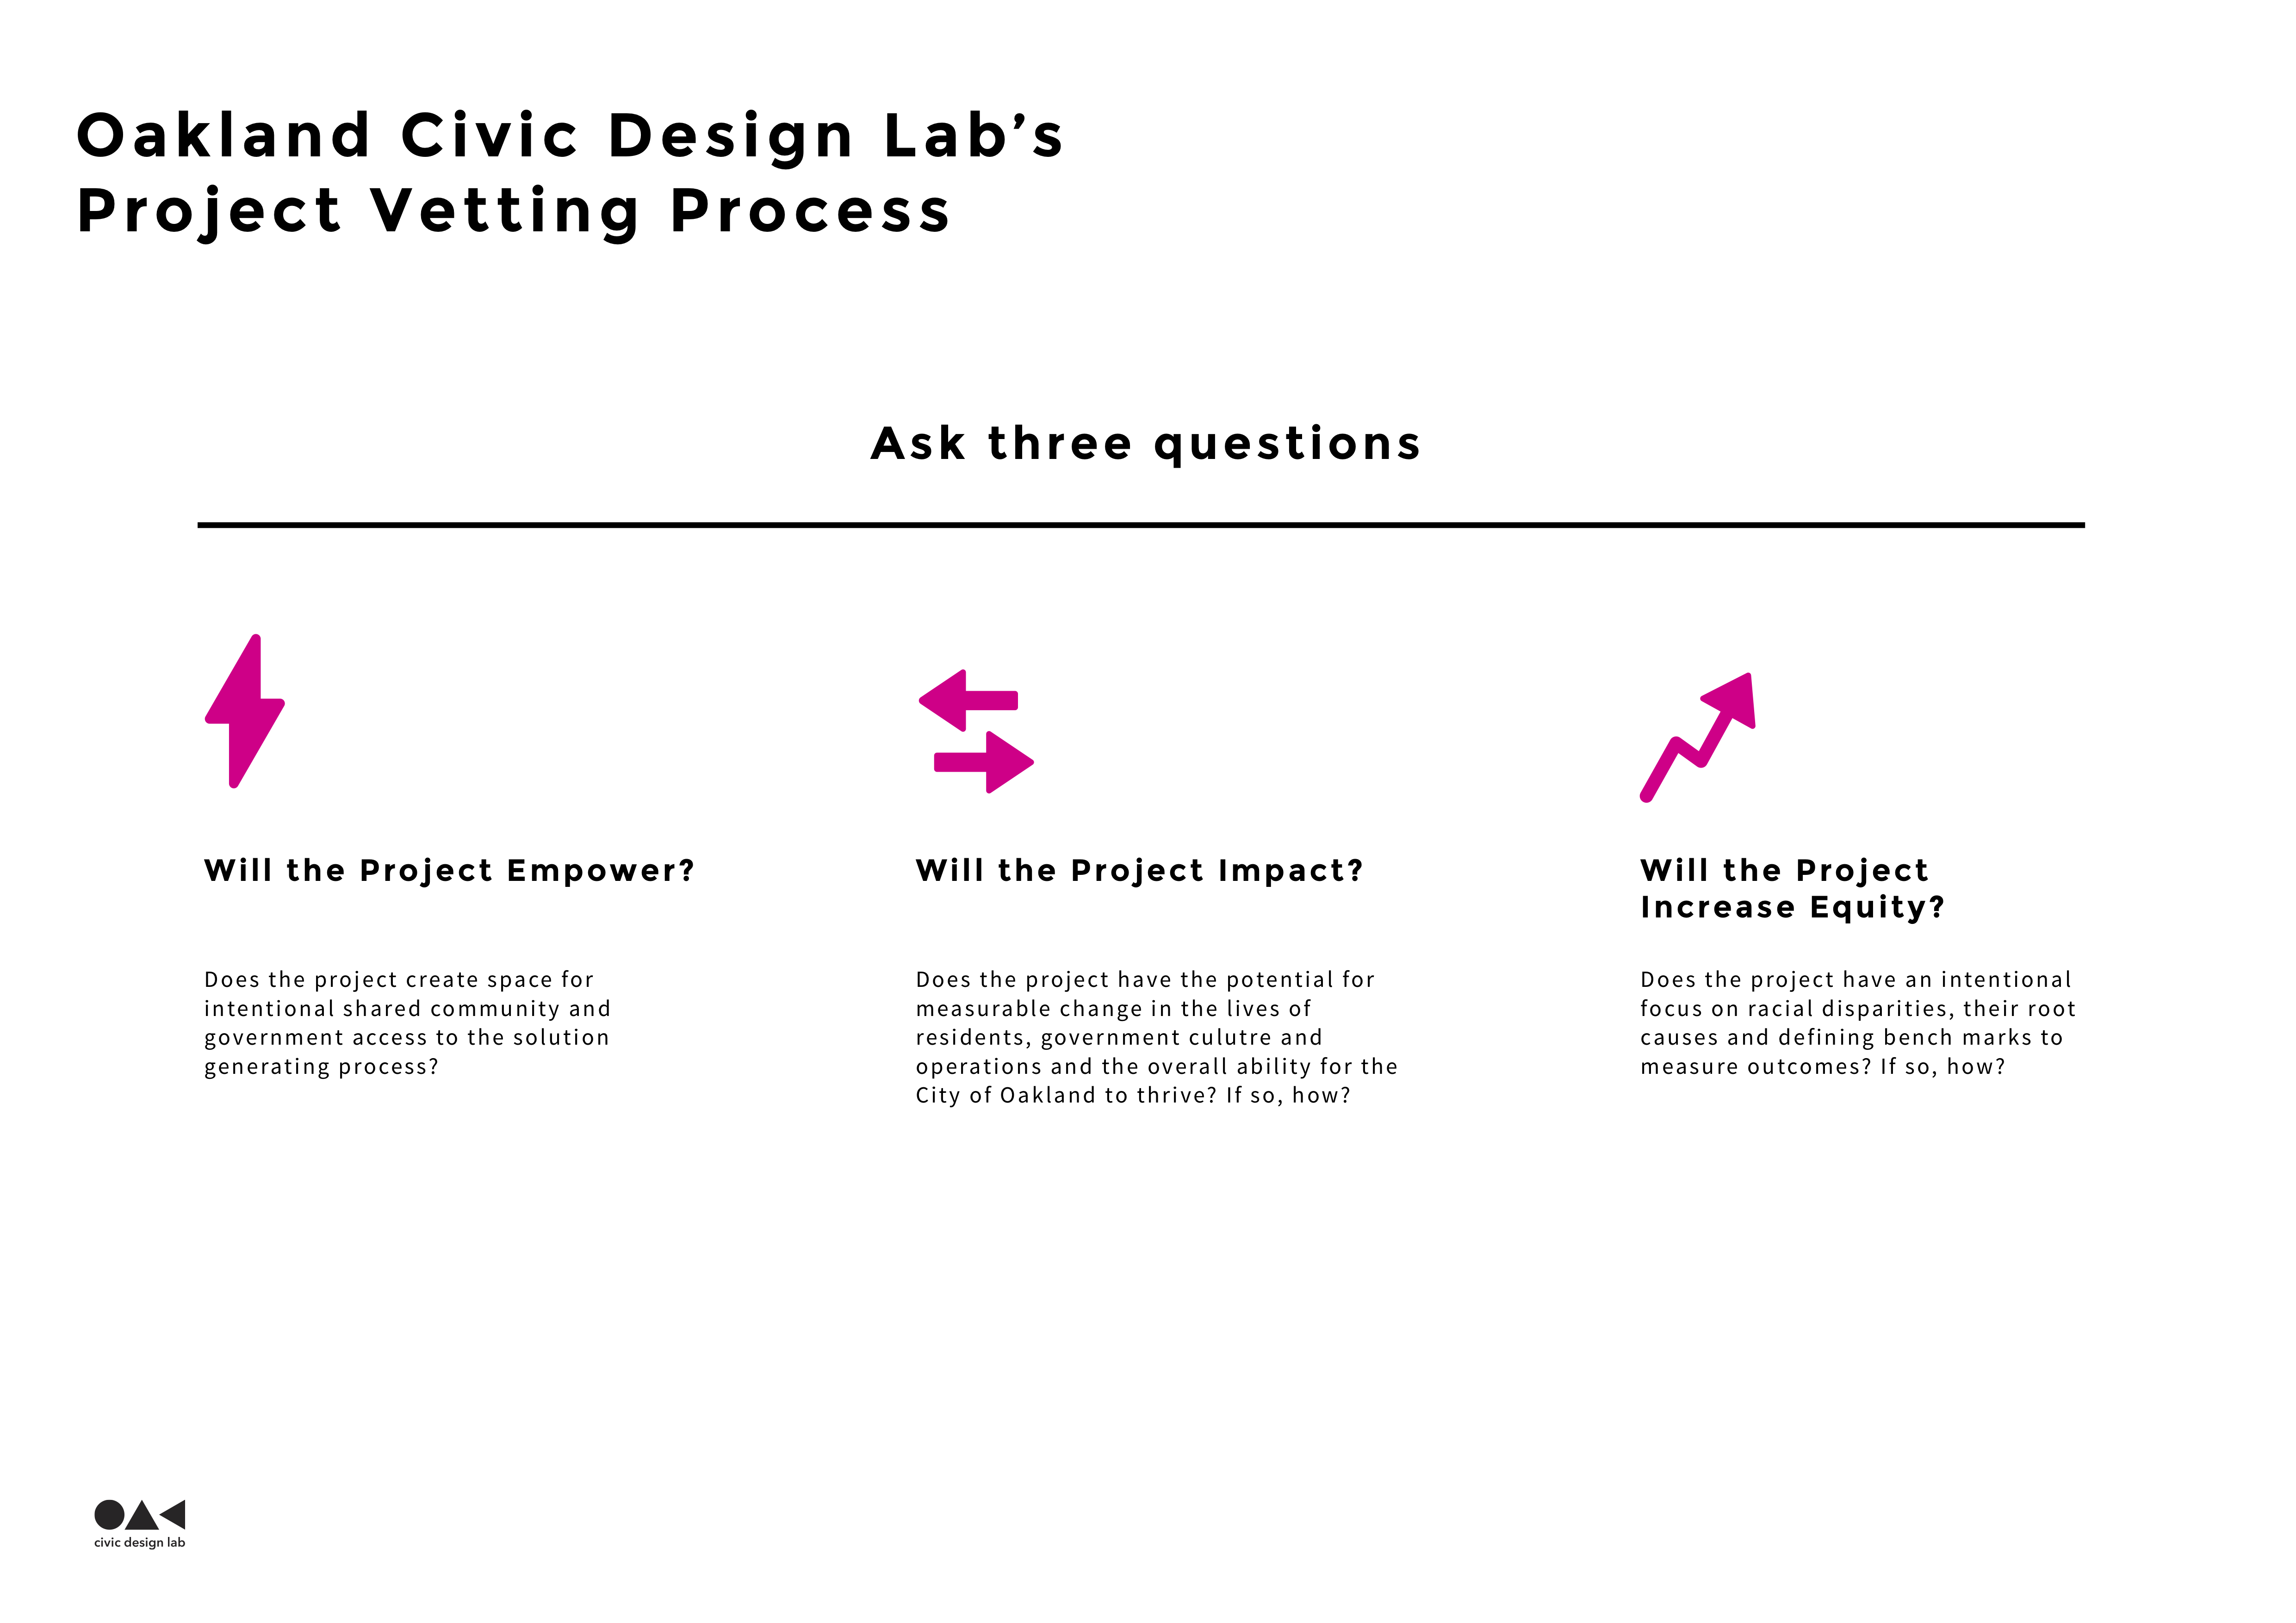 The Civic Design Lab's Project Vetting Process Image